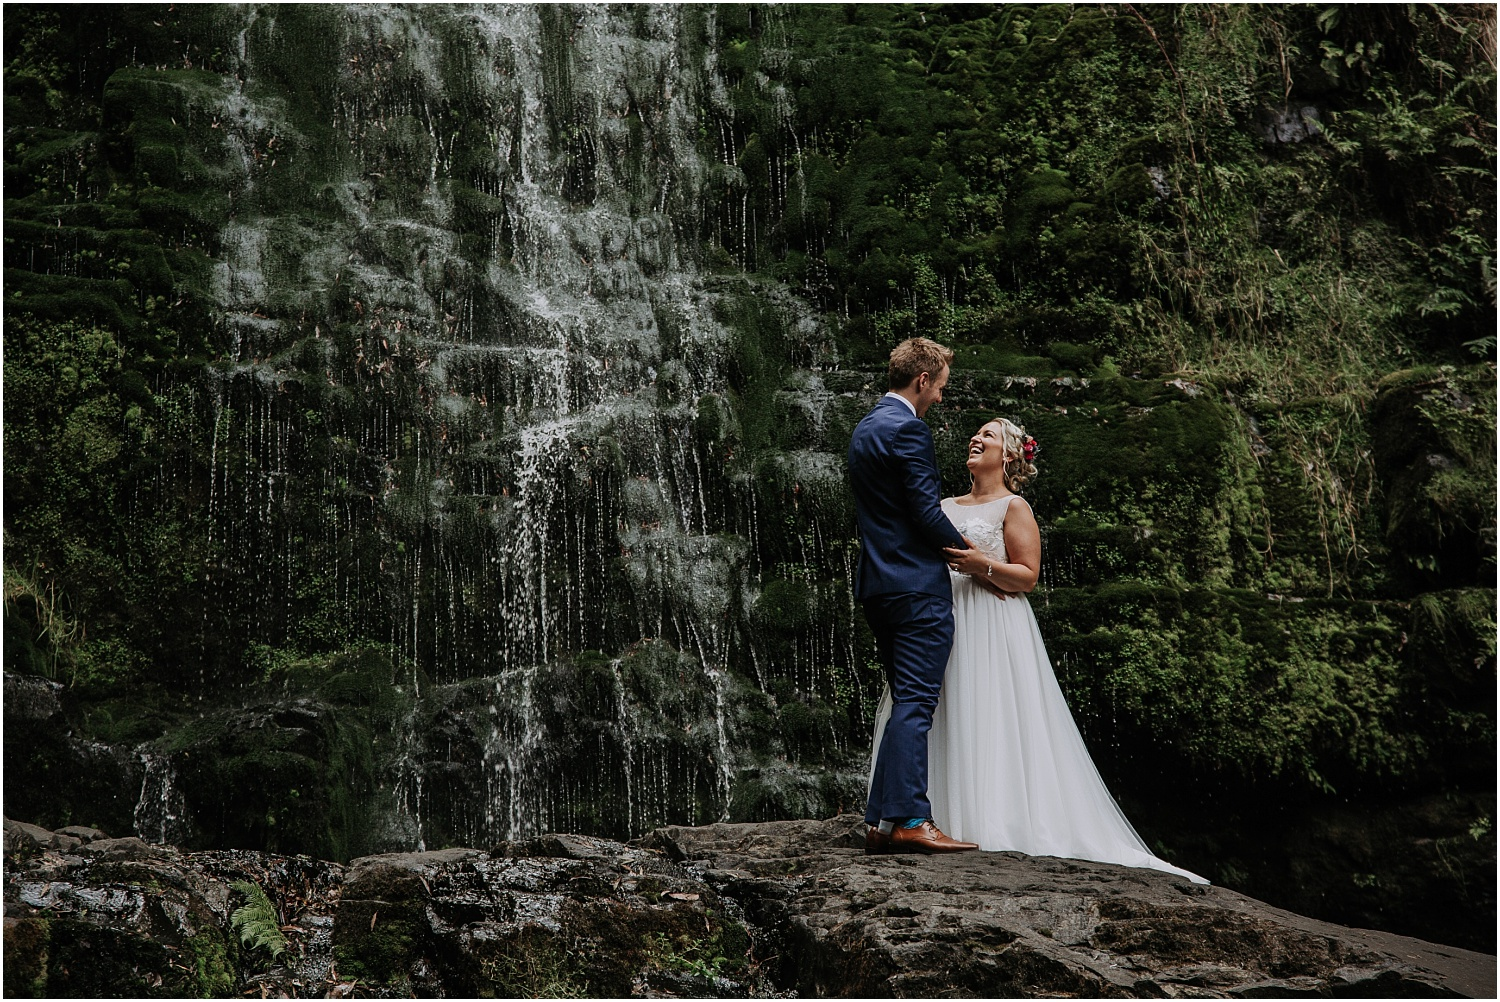 Ainslee and Warwick's elopement at Erskin Falls and the Lorne Beach Pavilion on the Great Ocean Road._0075.jpg